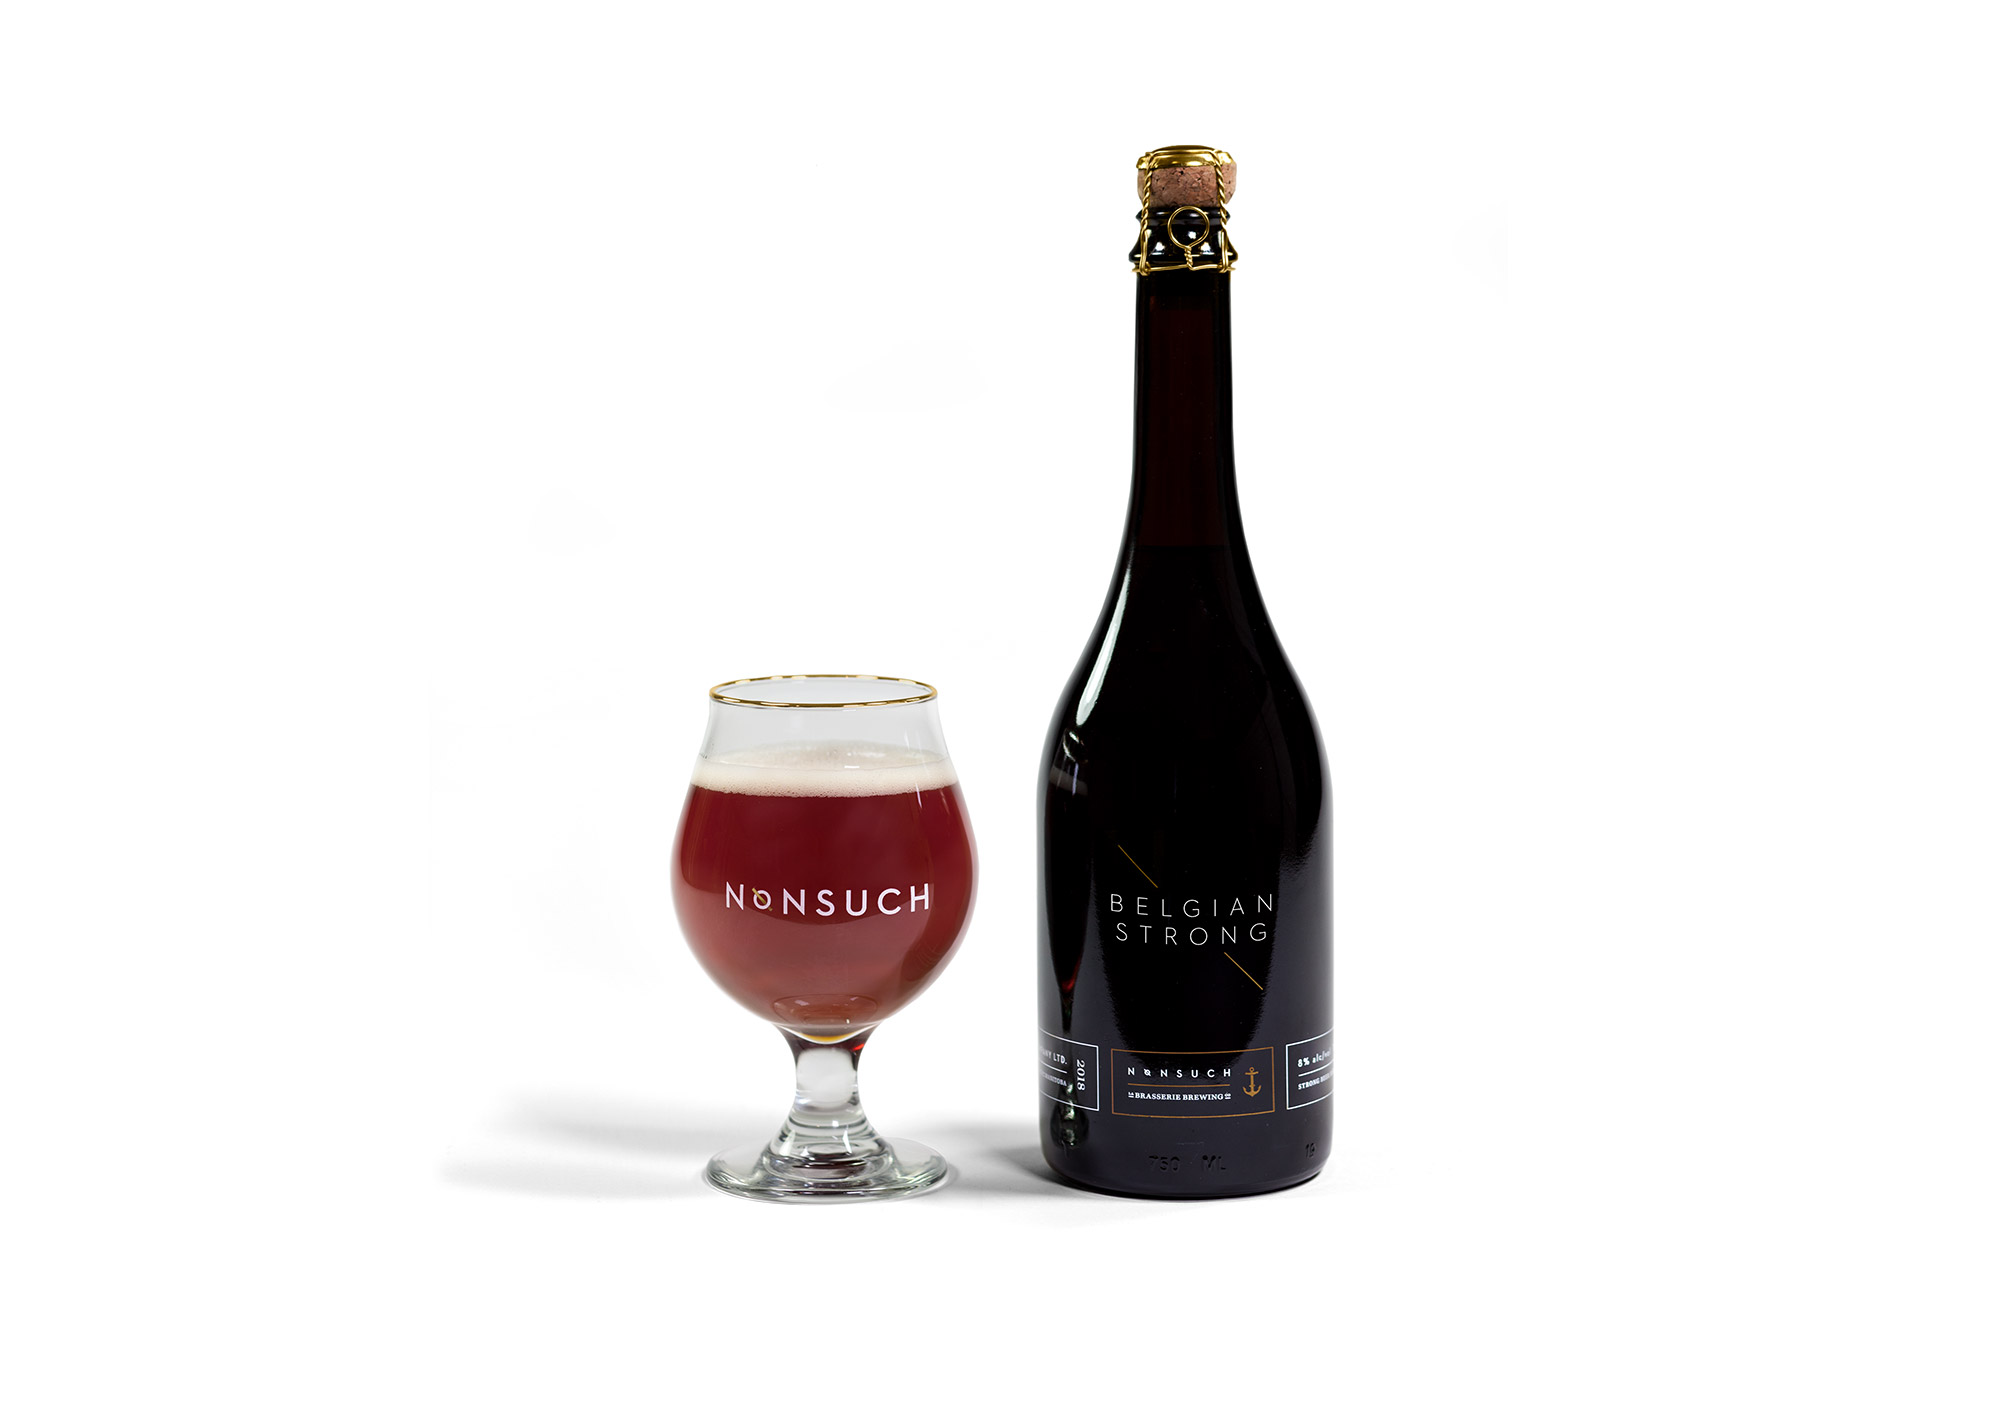 Belgian Strong in Bottle and Glass 2000px.jpg